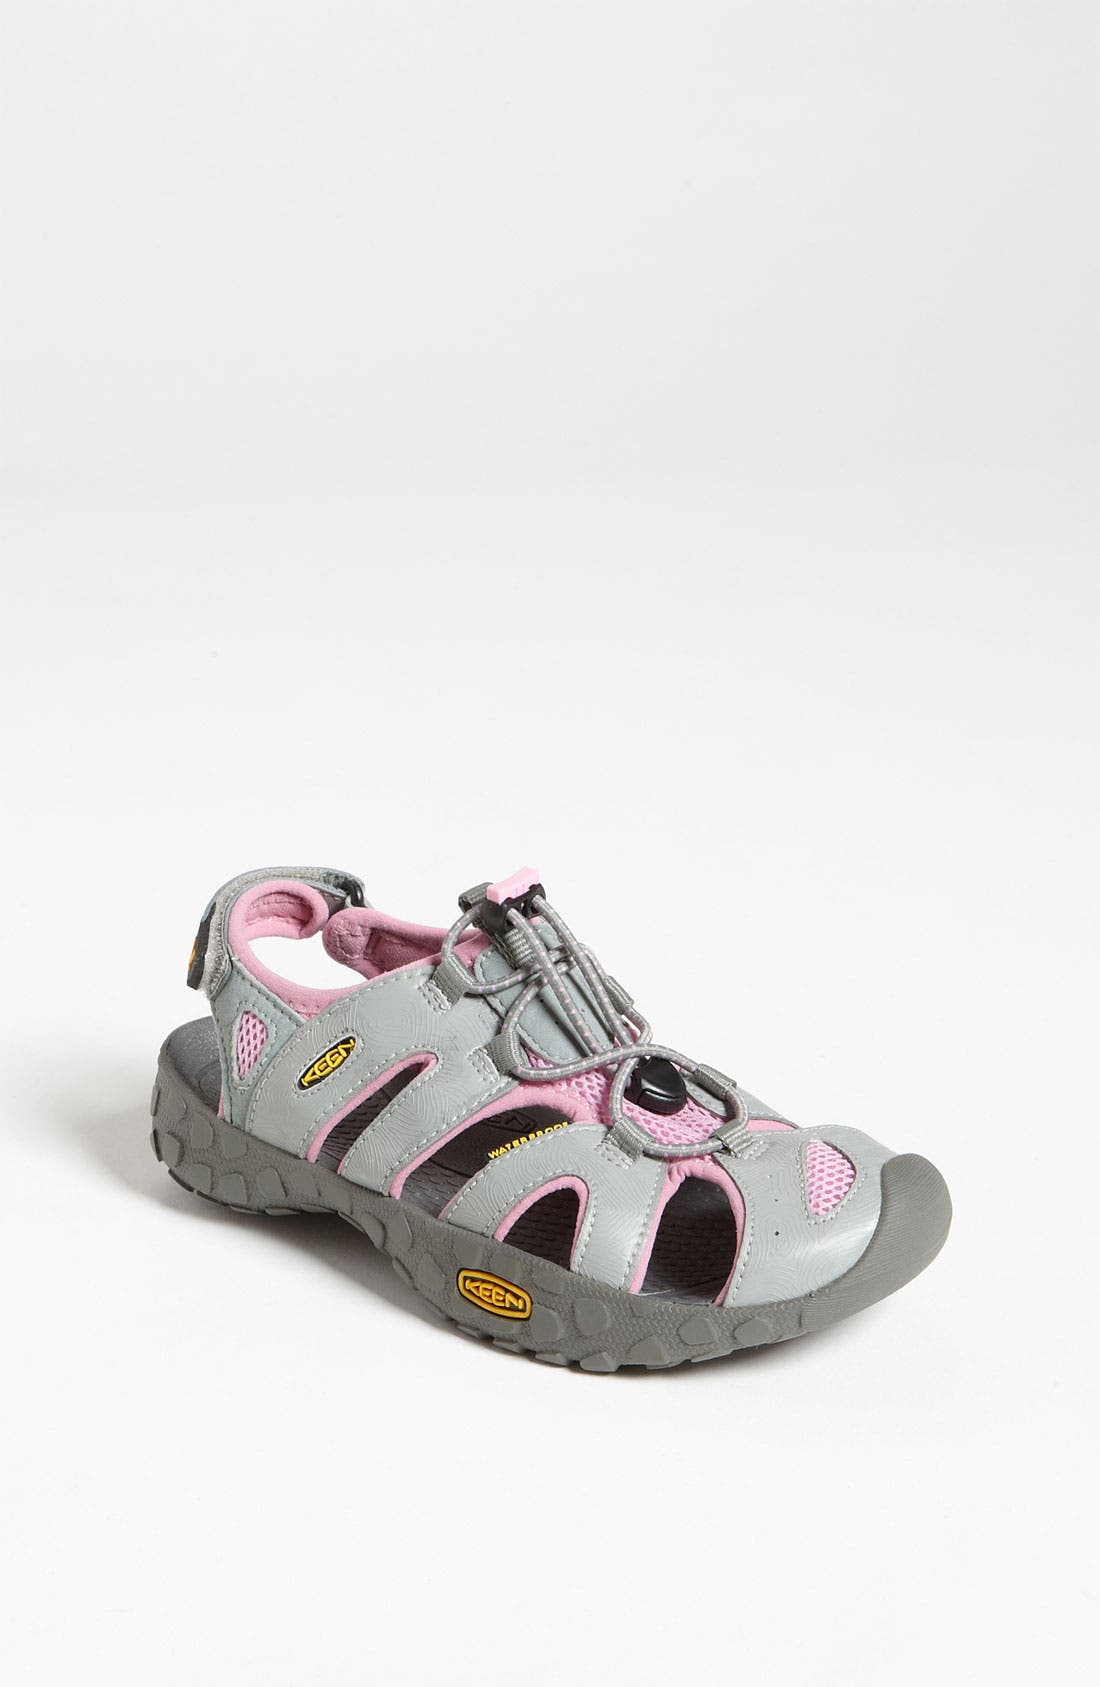 Main Image - Keen 'Kupa' Sandal (Toddler, Little Kid & Big Kid)